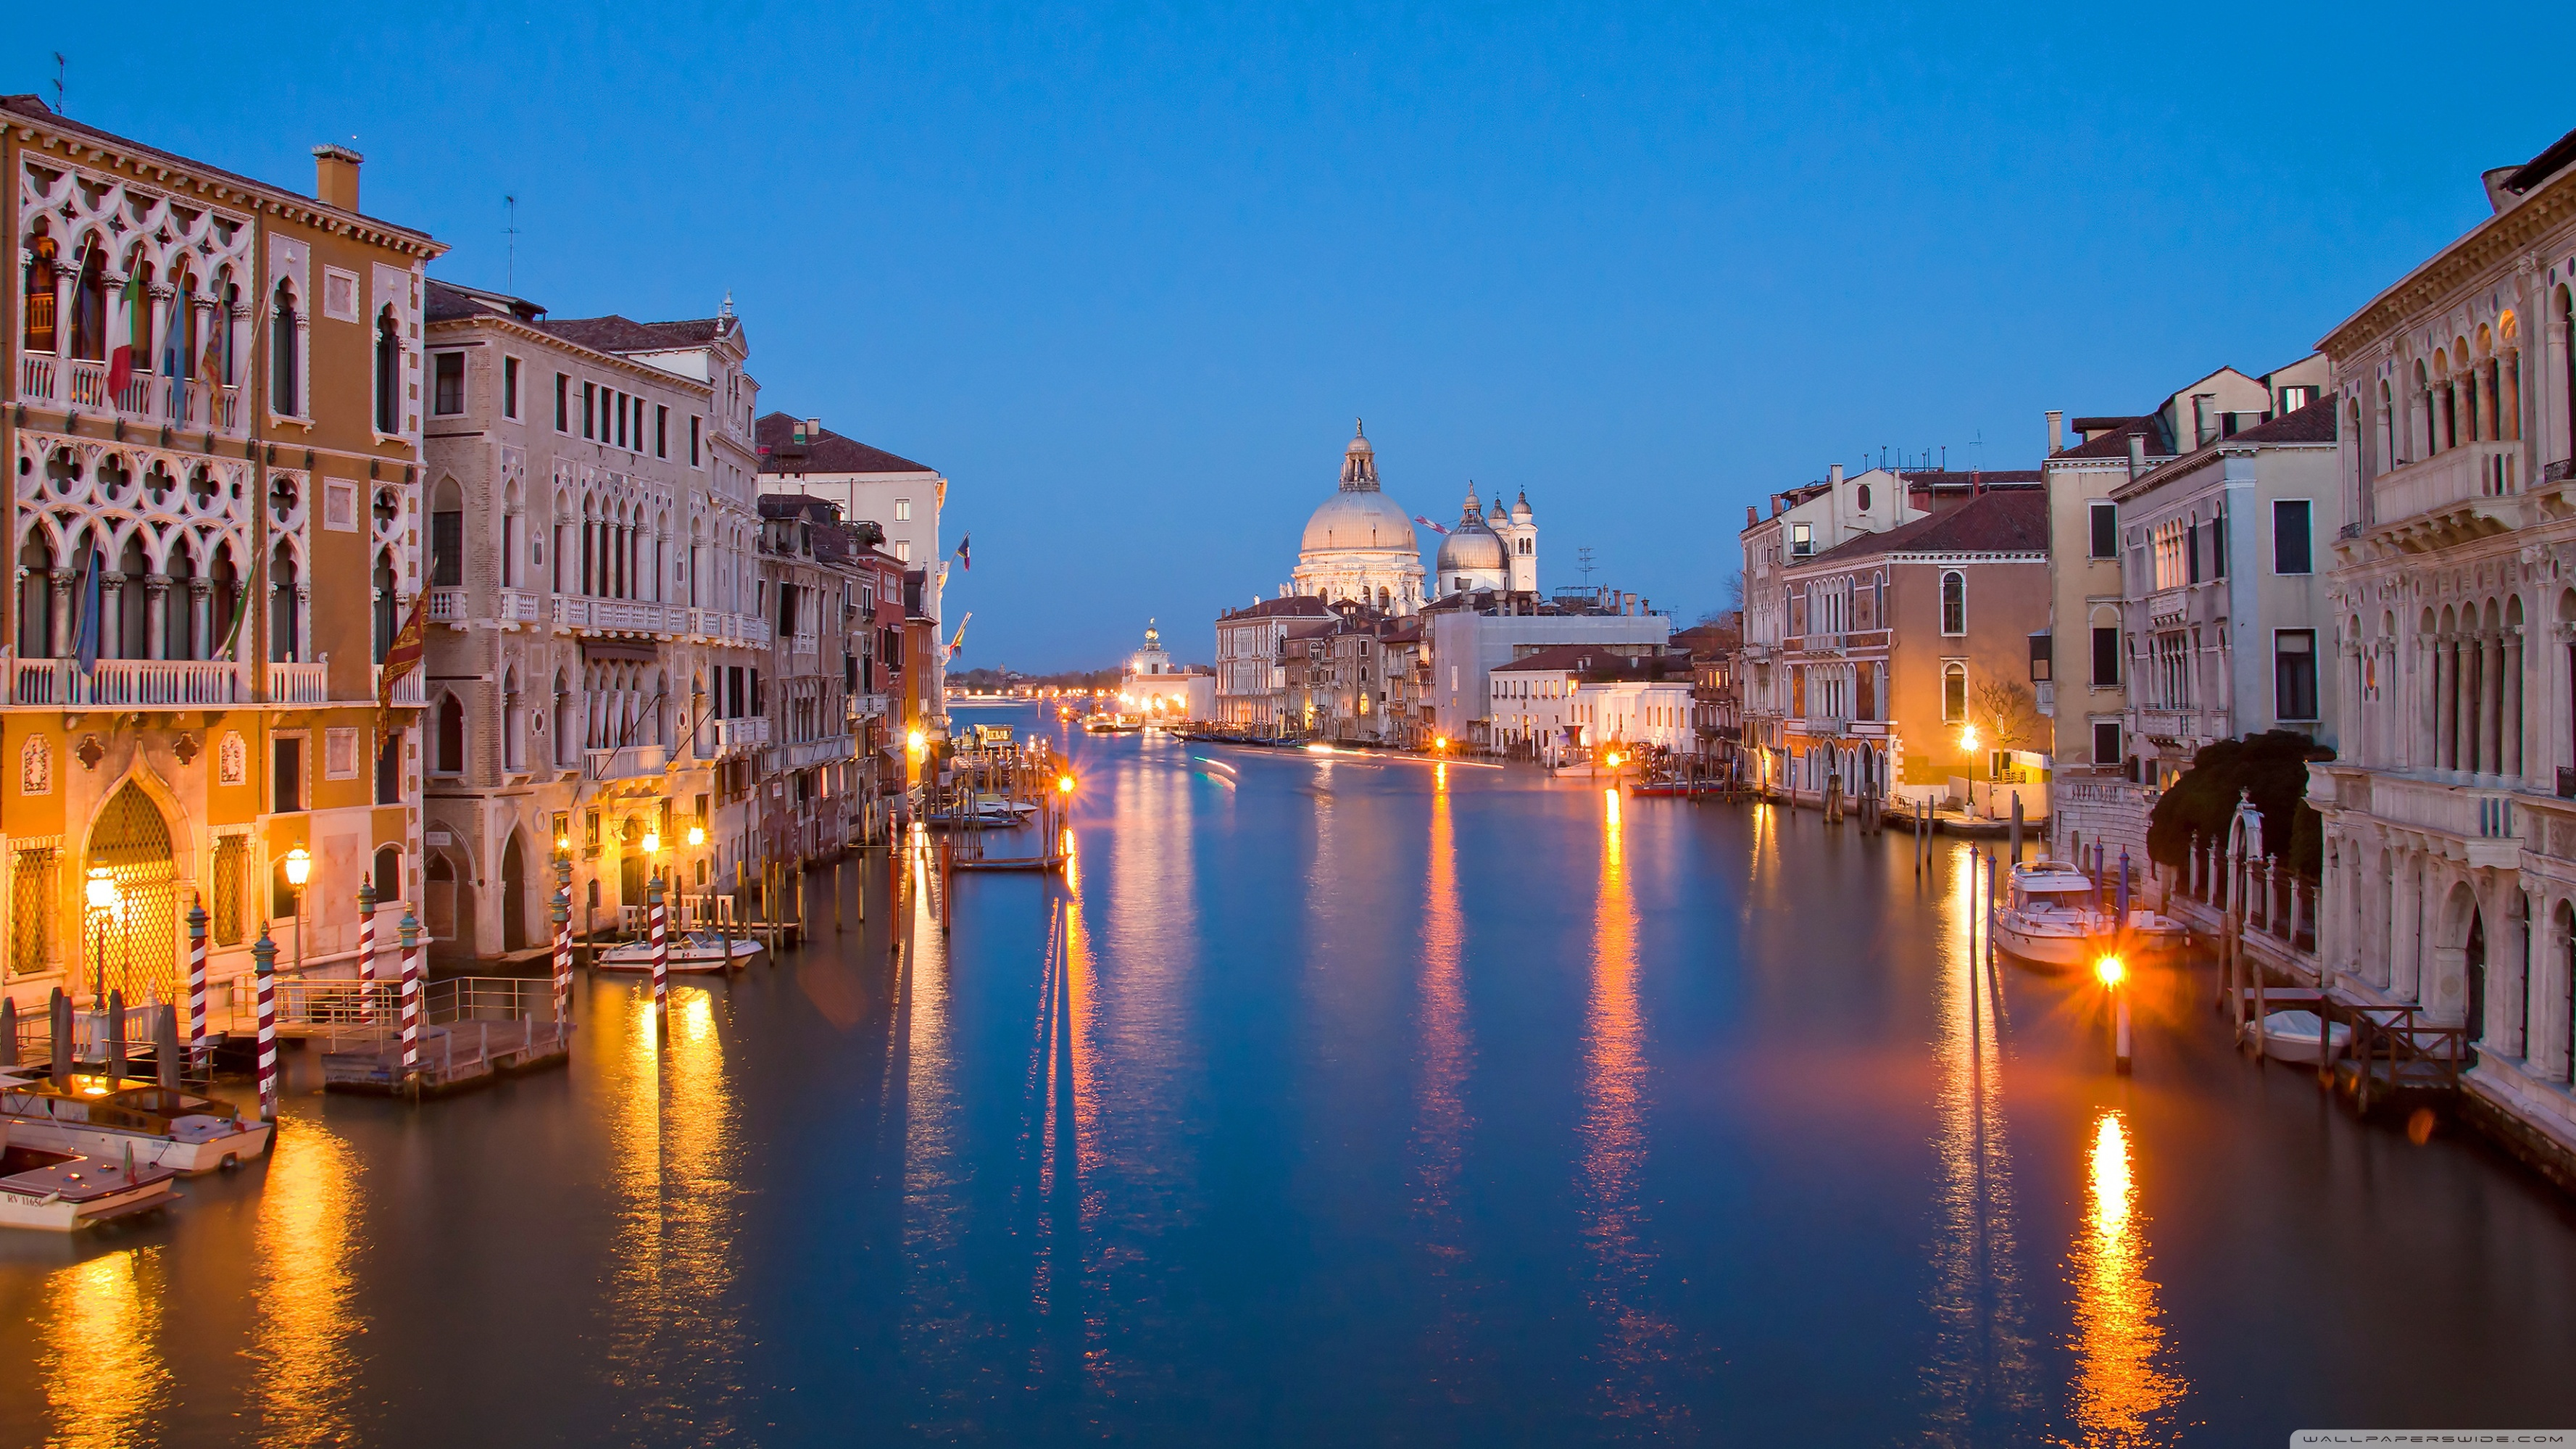 Night in Venice wallpapers Collection 3554x1999